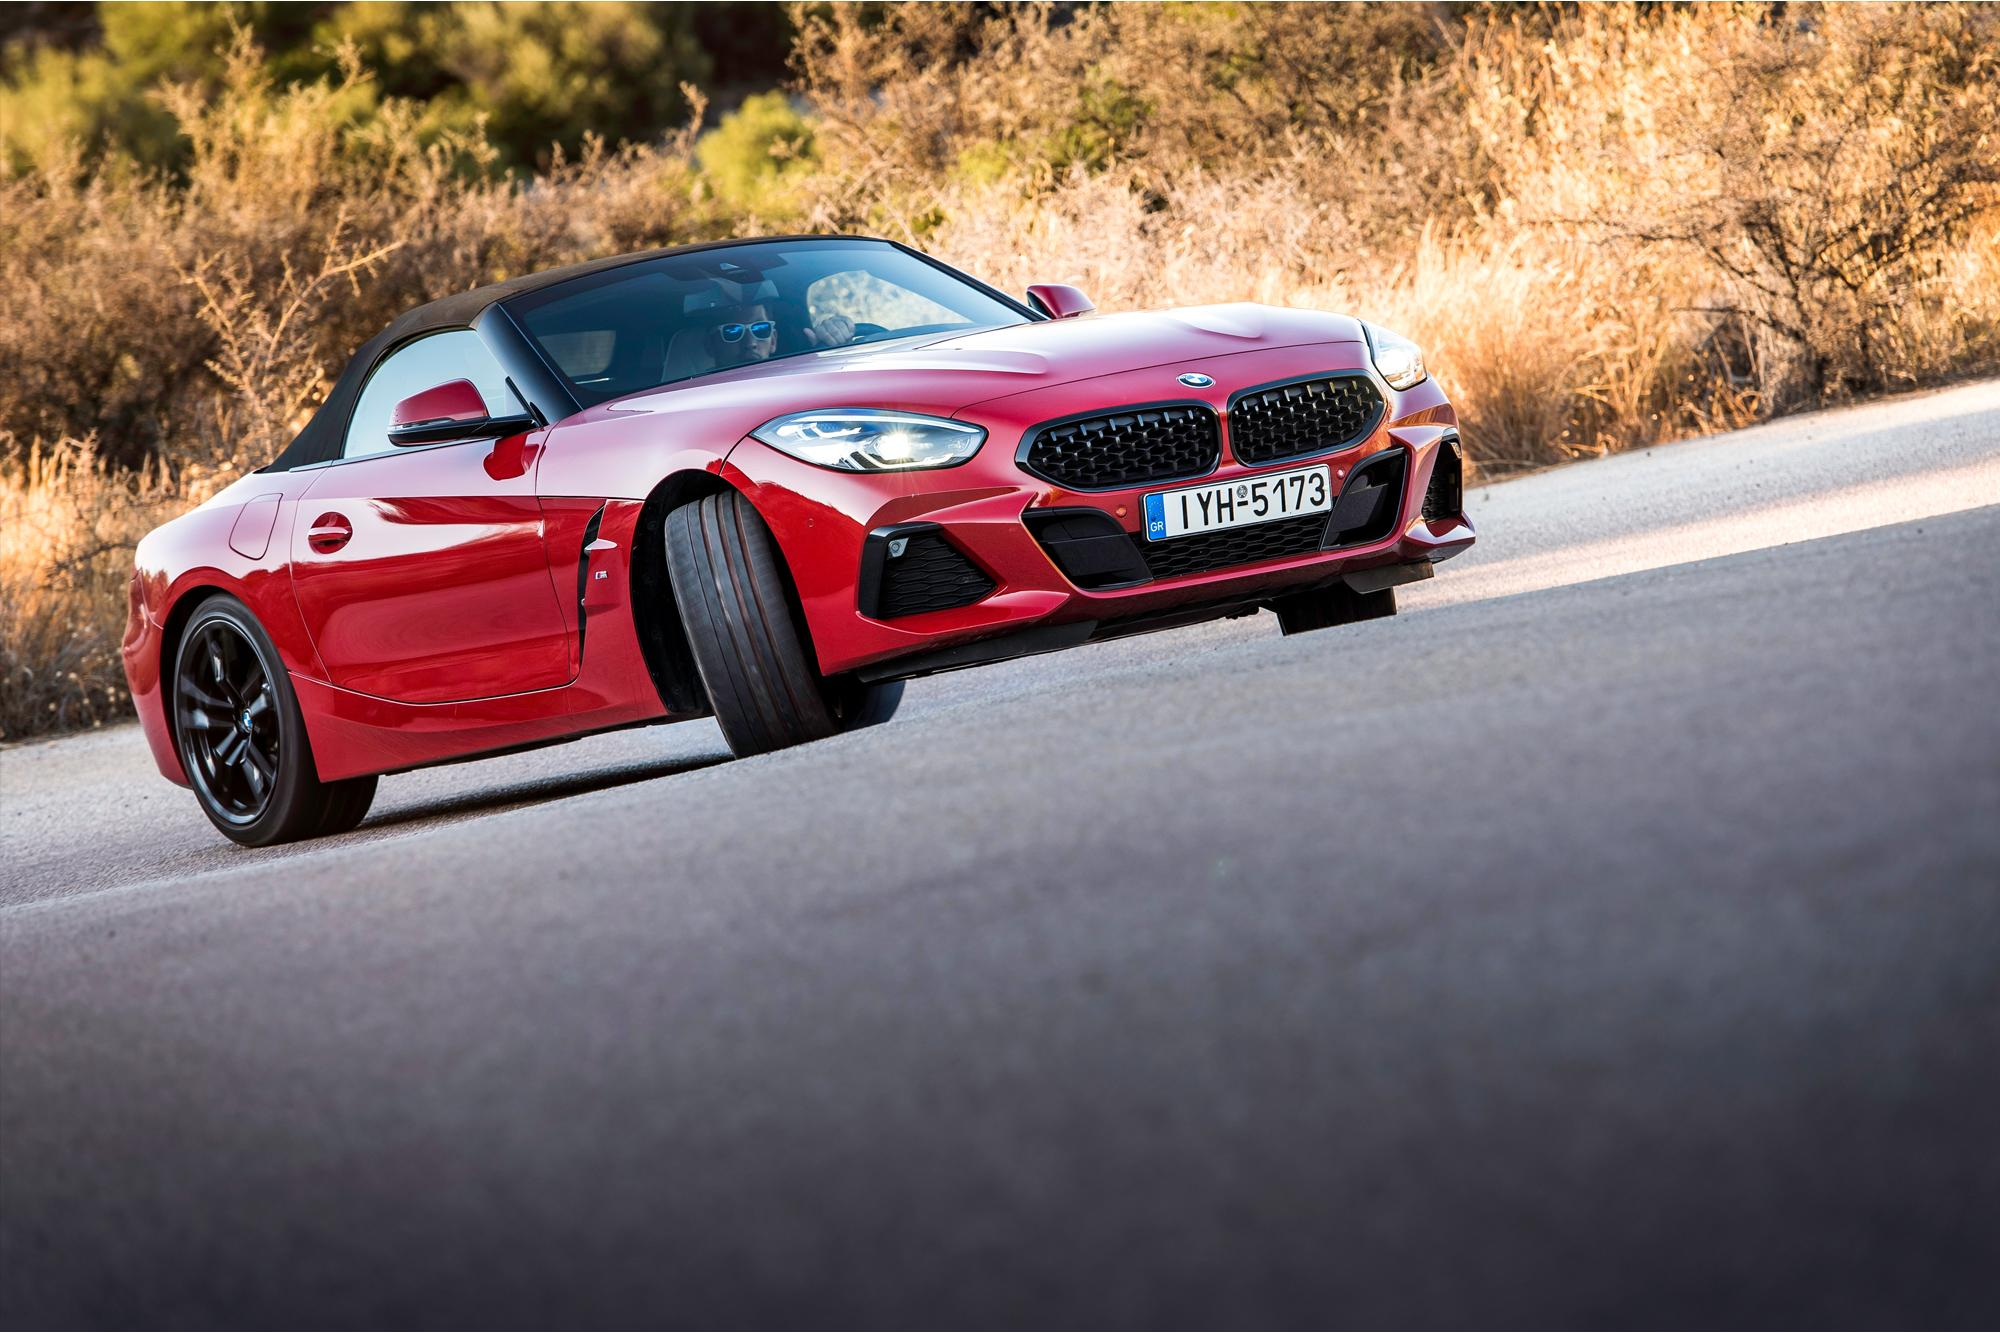 BMW Z4 sDrive20i 197PS